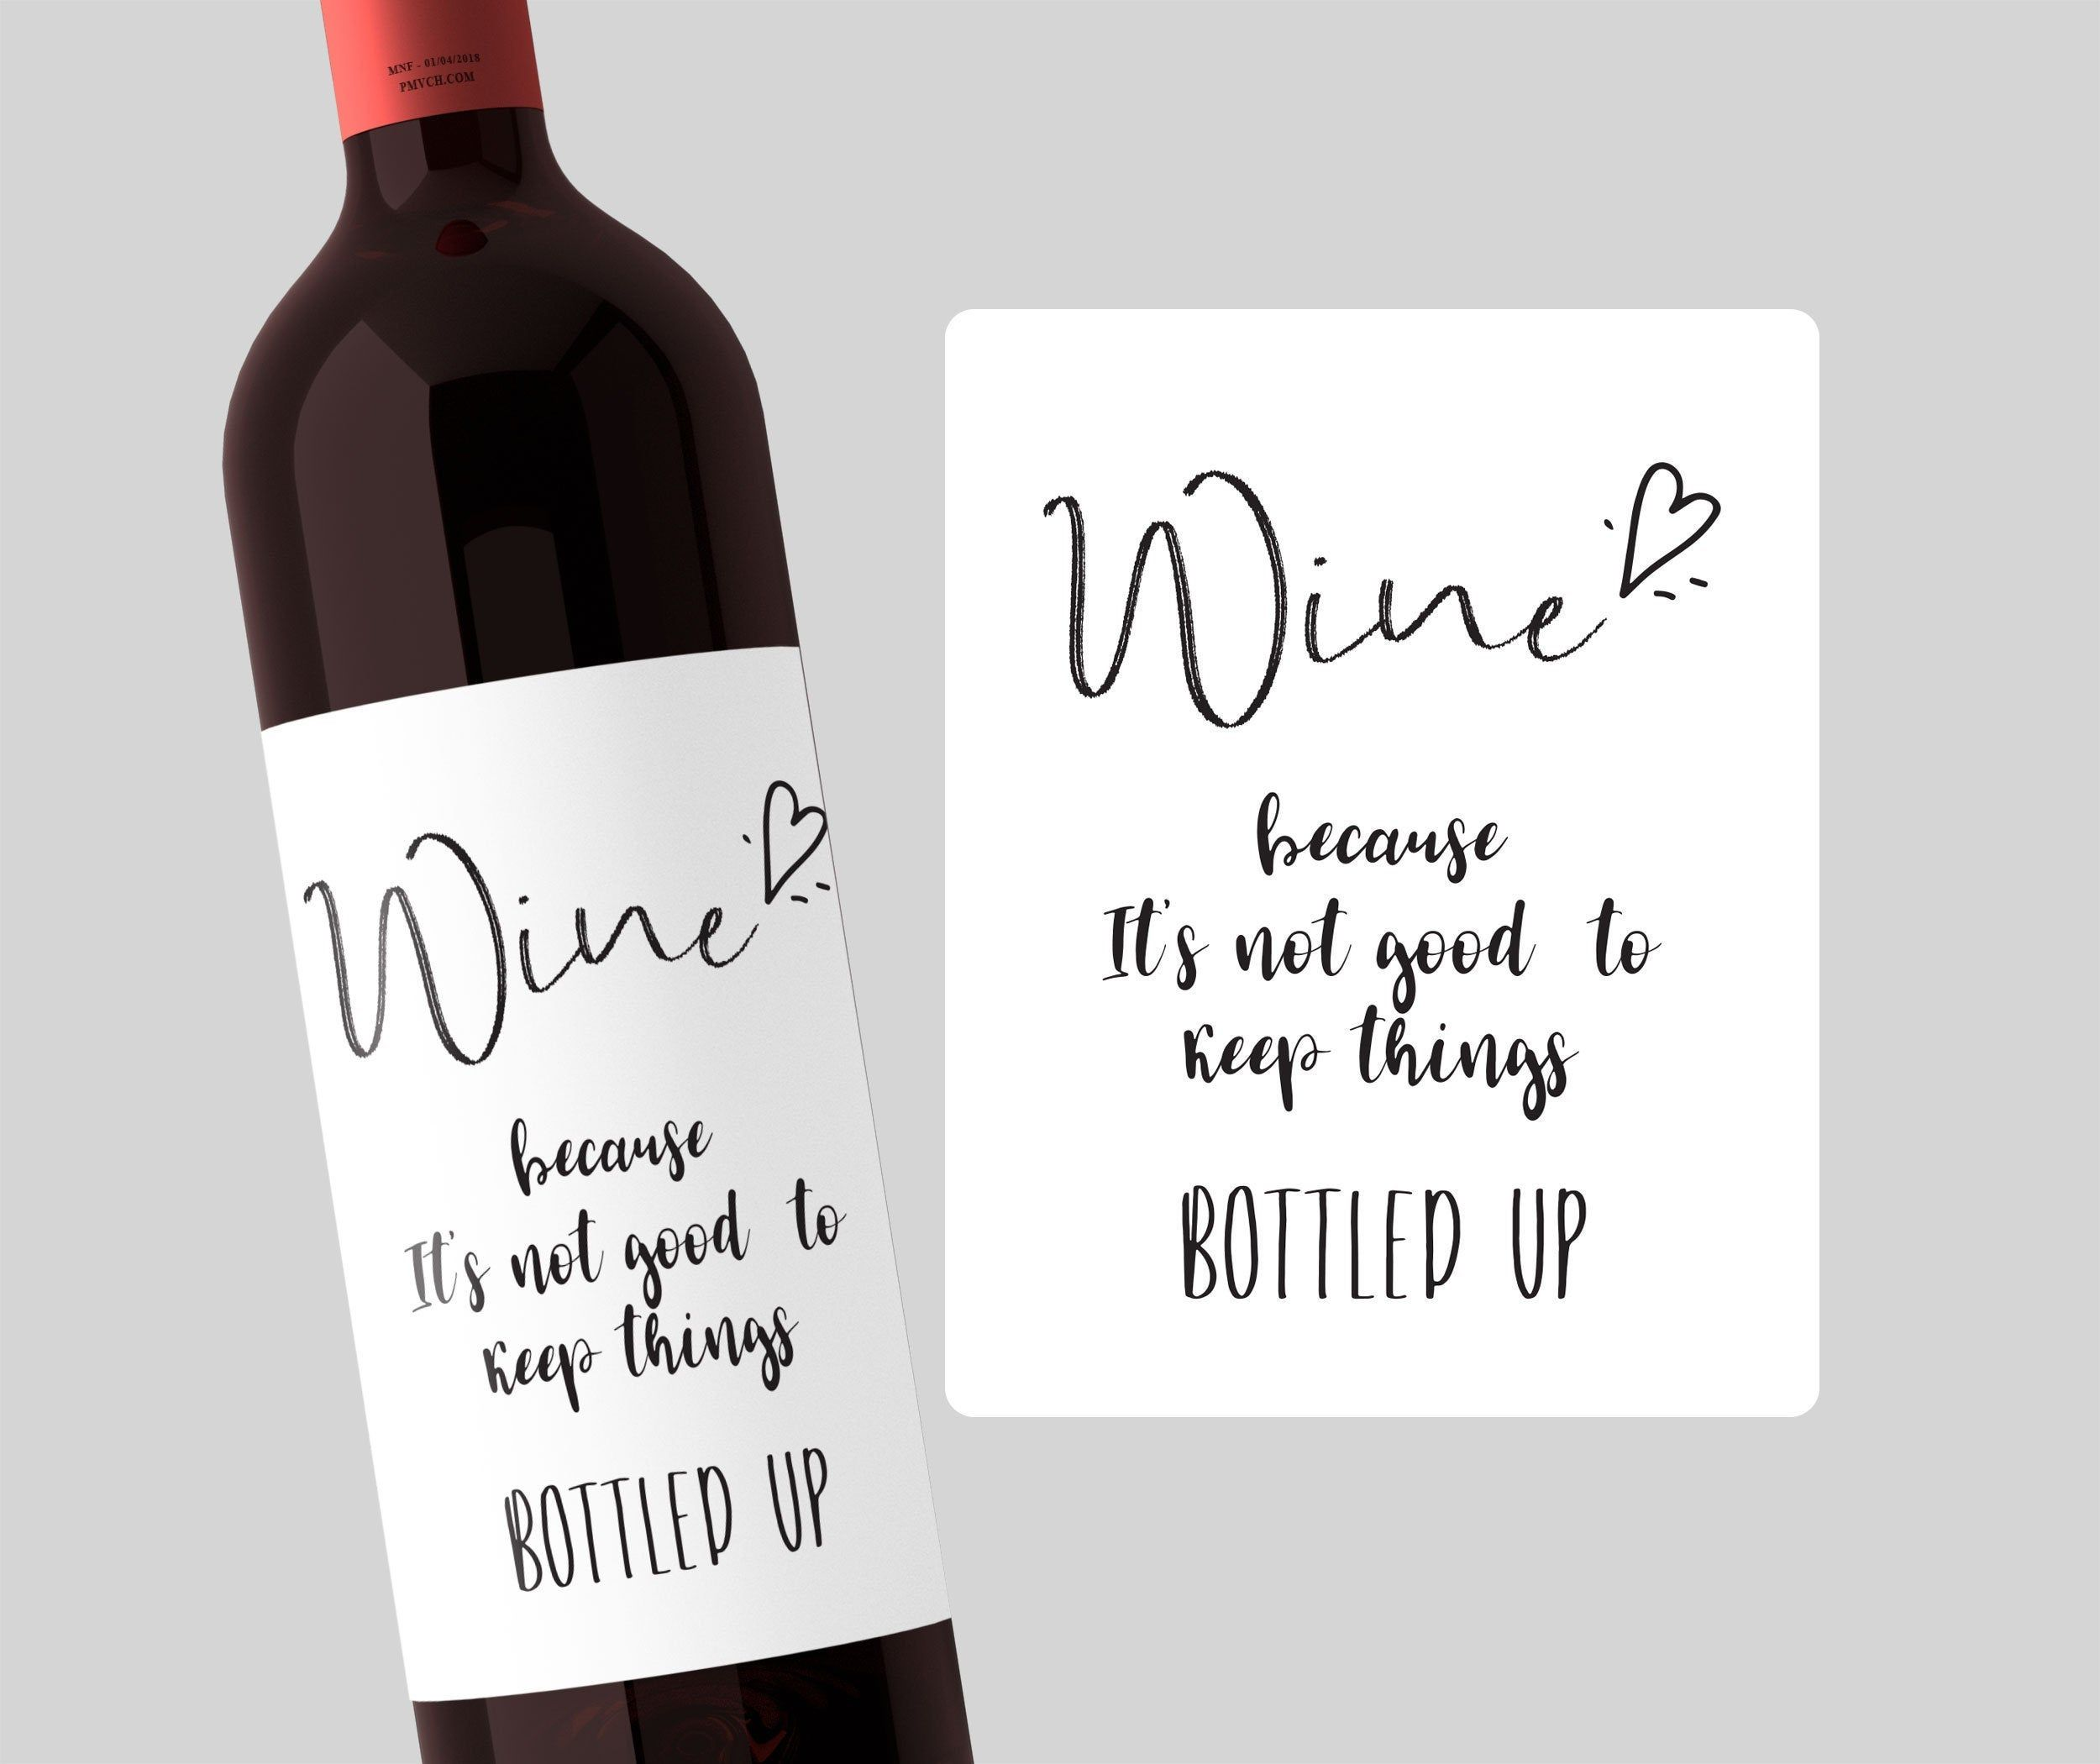 Funny Wine Label Wine because It's not good to keep Etsy